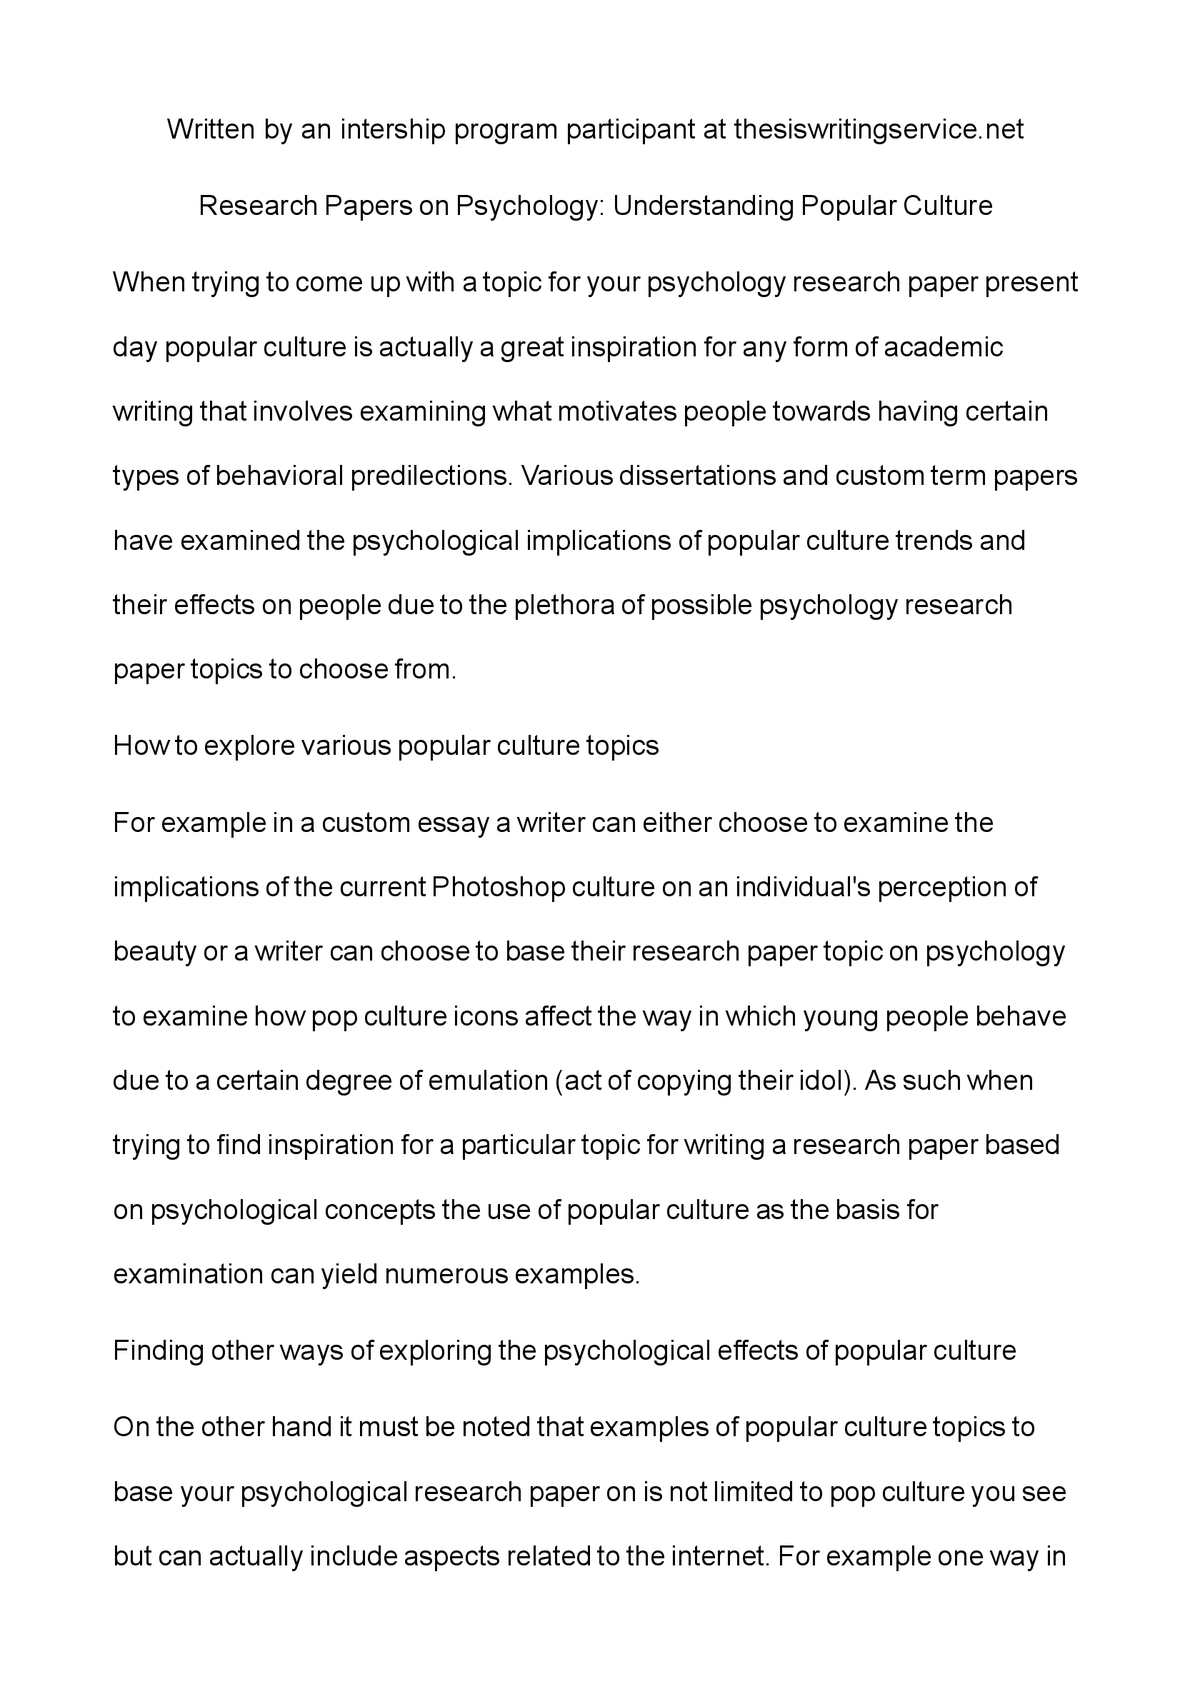 003 P1 Research Paper Cultural Psychology Topics Sensational For Full